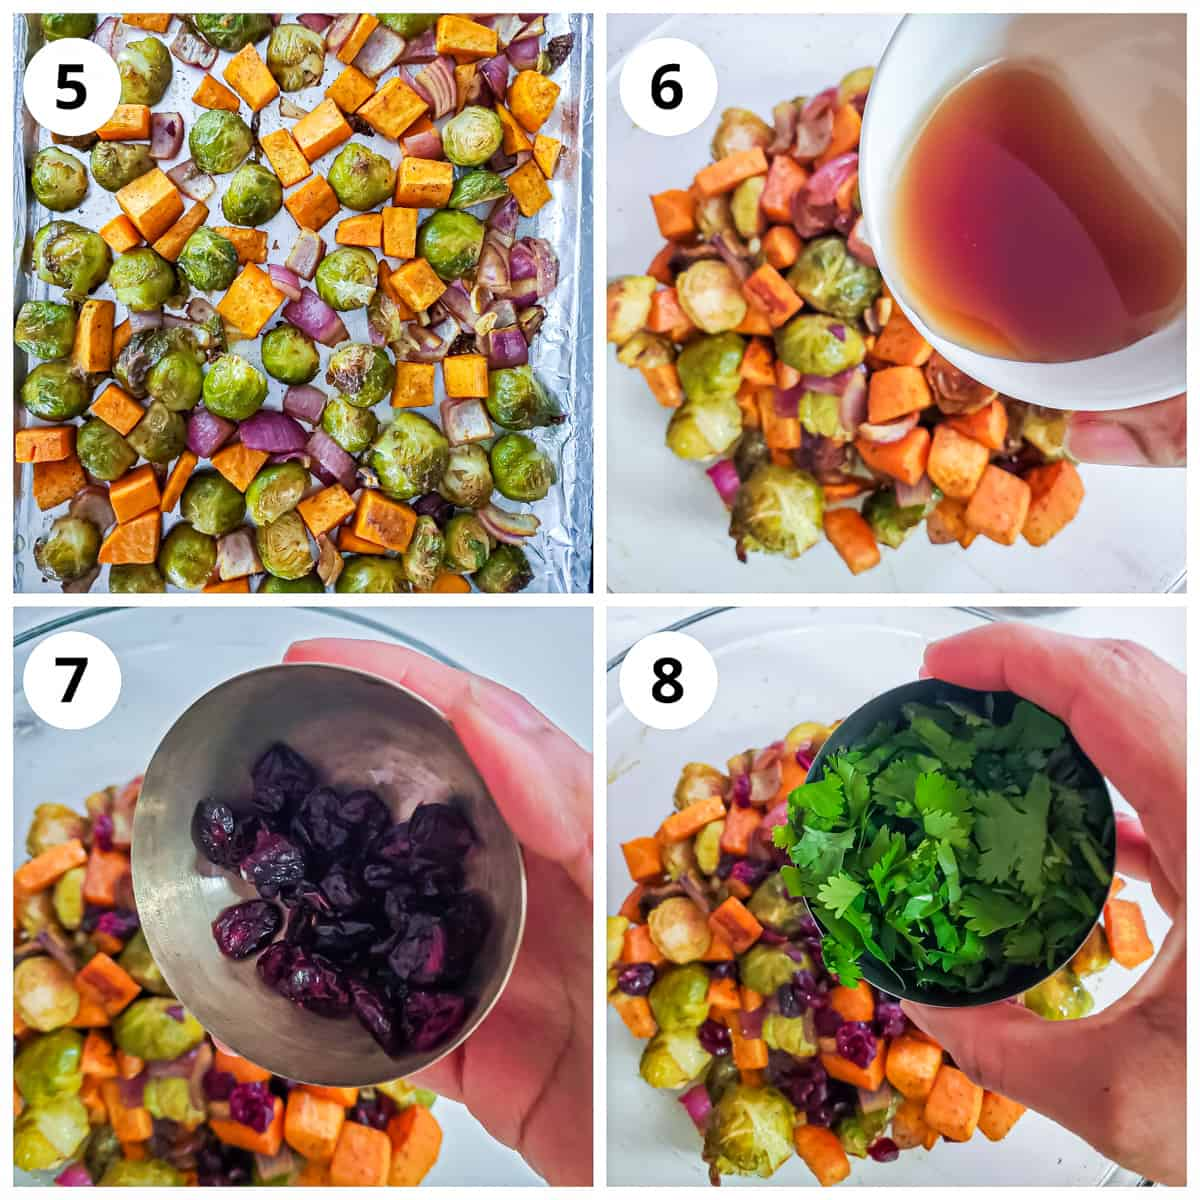 Steps for adding maple syrup, cranberries and cilantro to roasted Brussels sprouts and sweet potato.